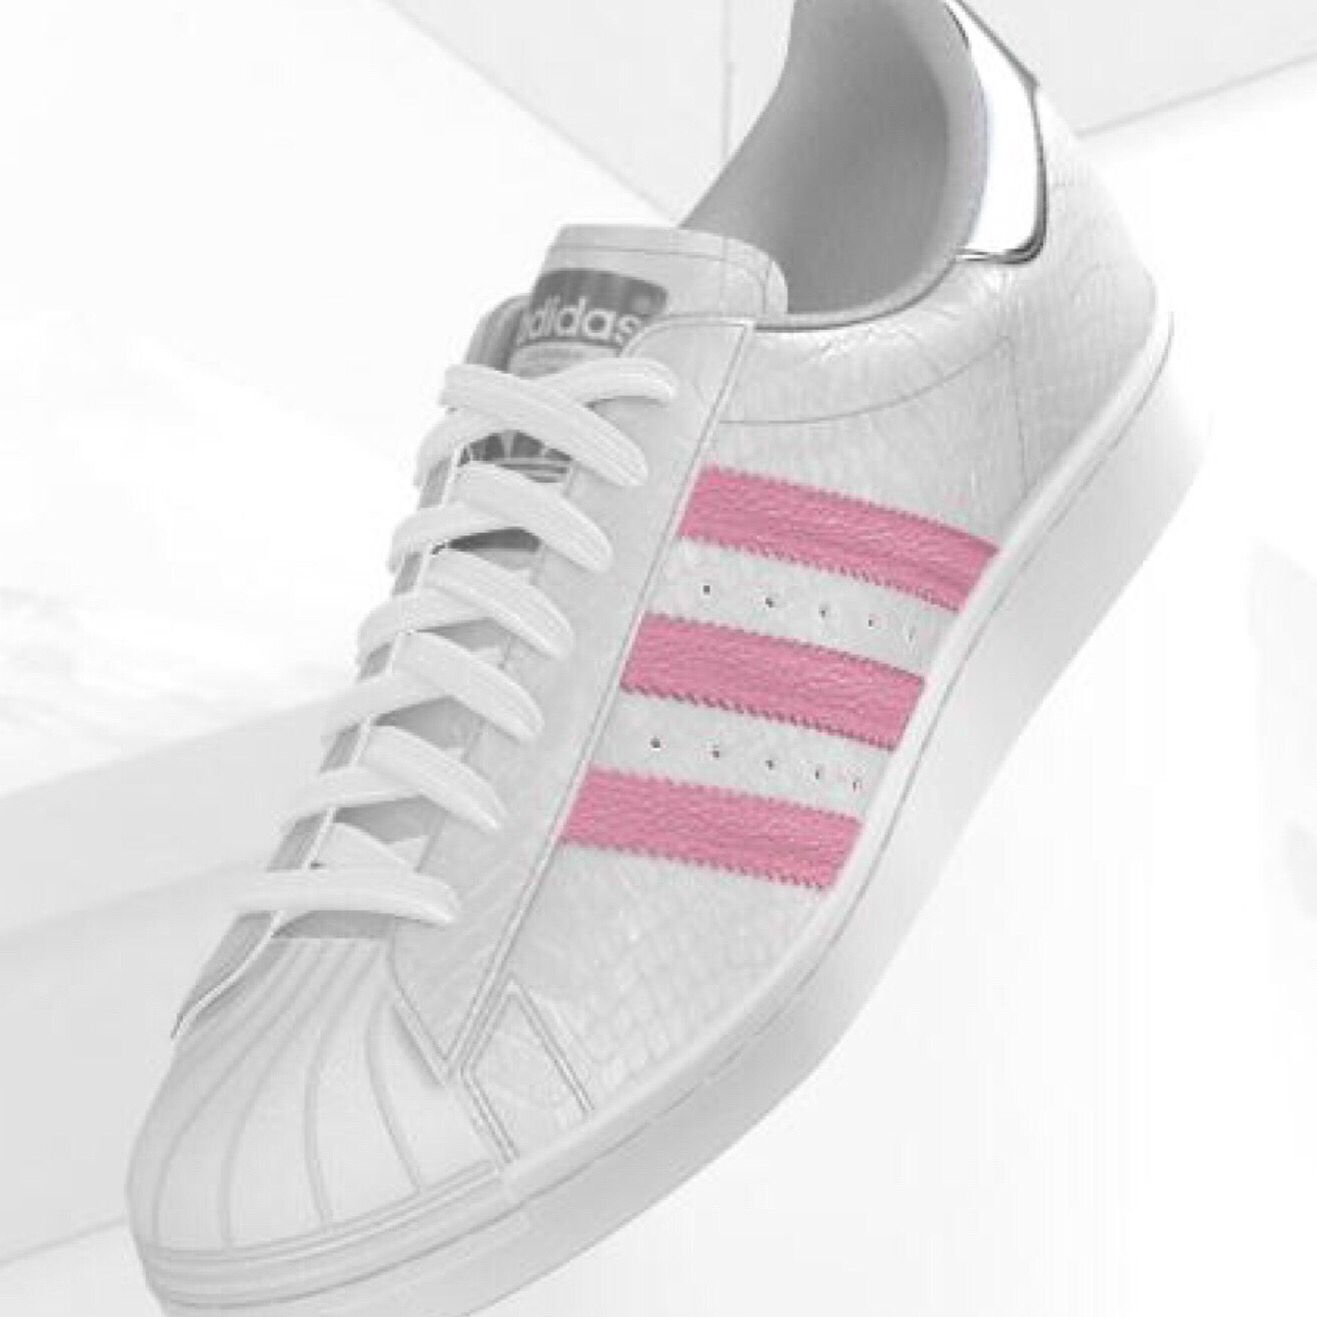 6e5075c3c13f mi adidas Superstar white croco pink stripes metallic silver